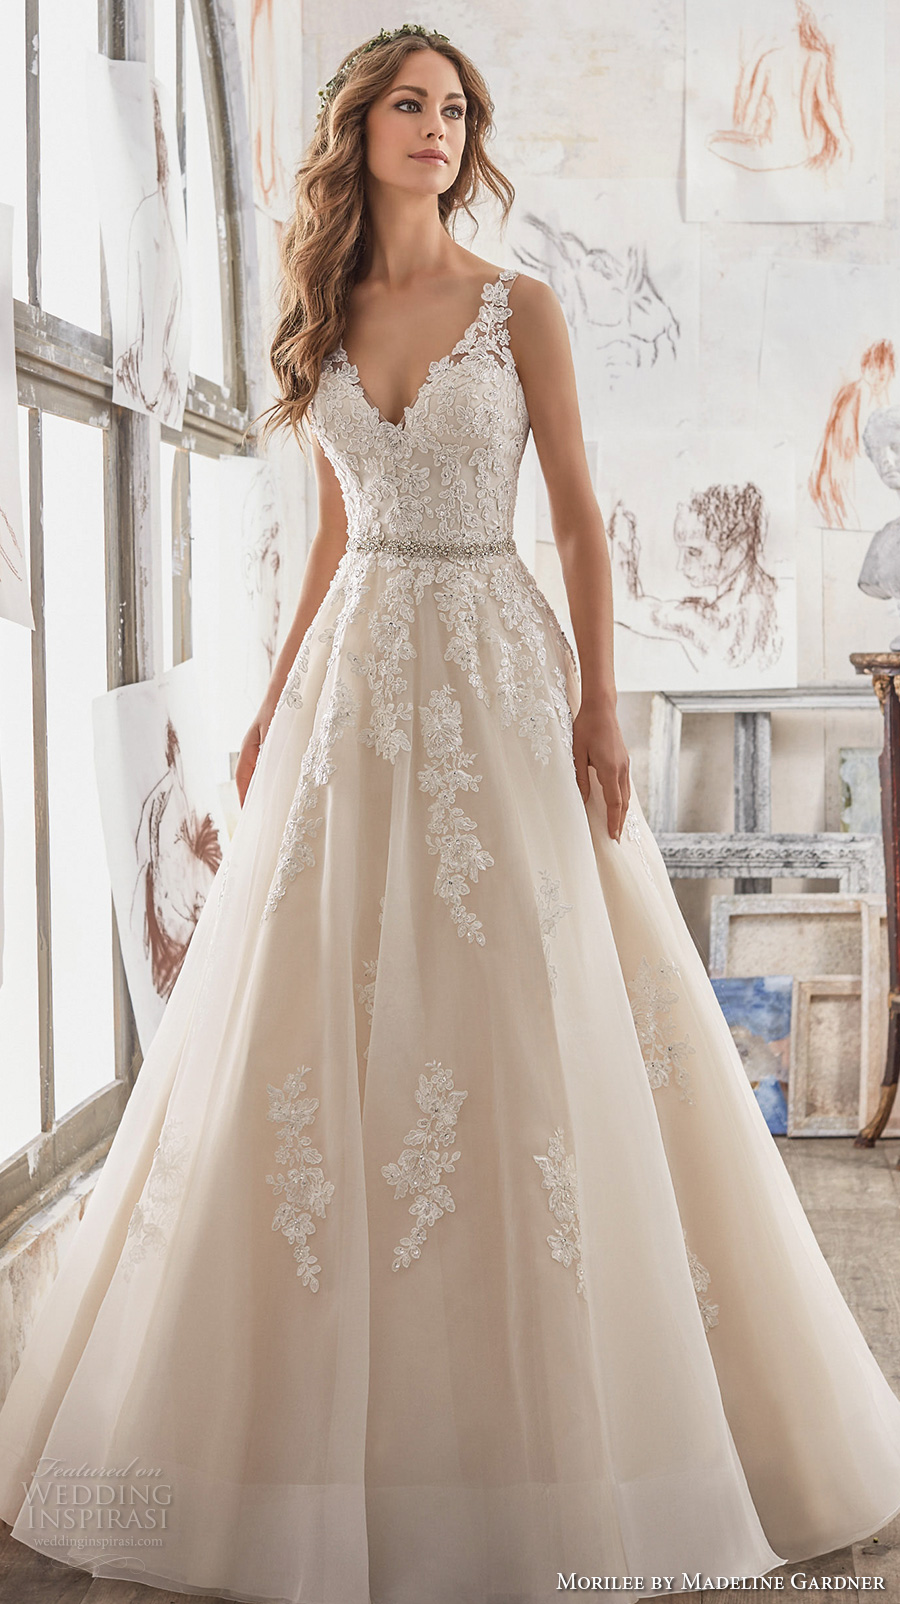 mori lee wedding dresses morilee spring 2017 bridal sleeveless embroidered strap v neck heavily  embellished bodice zmivyzx